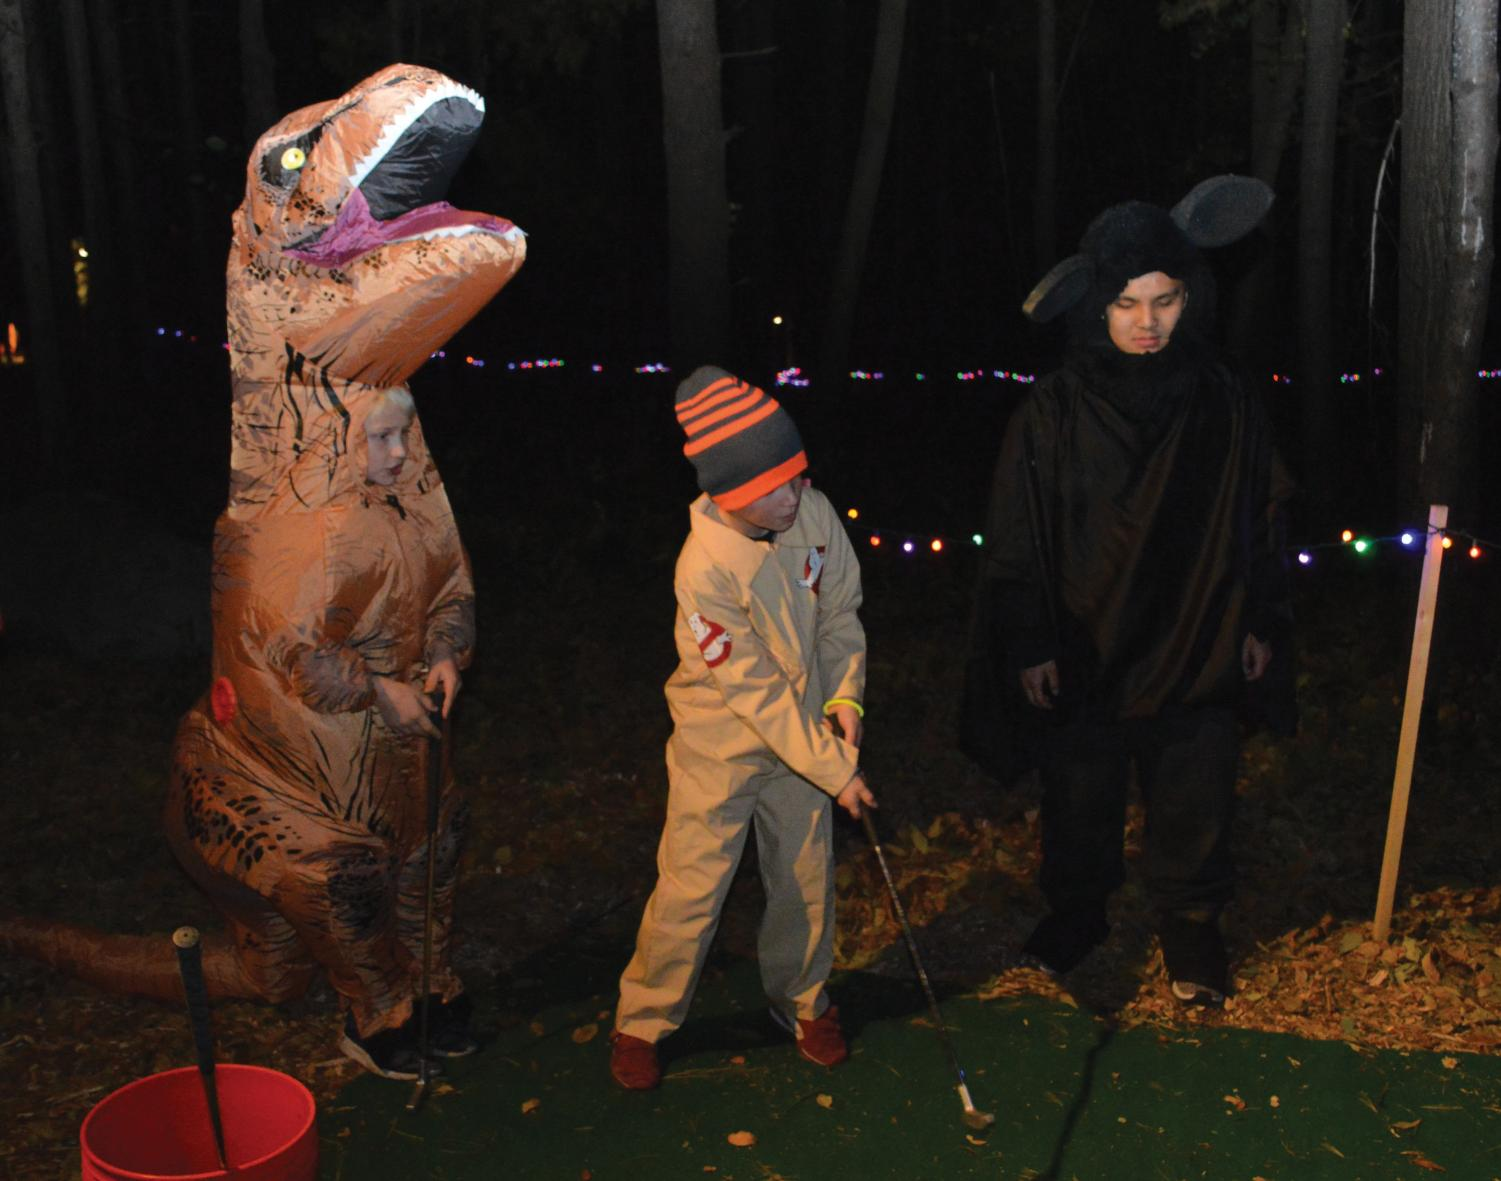 Senior Bryan Huynh volunteers with the National Honor Society Oct. 19 at the Westwood Hills Nature Center's Halloween party. The St. Louis Park City Council considers using bonds to fund the Nature Center renovations.